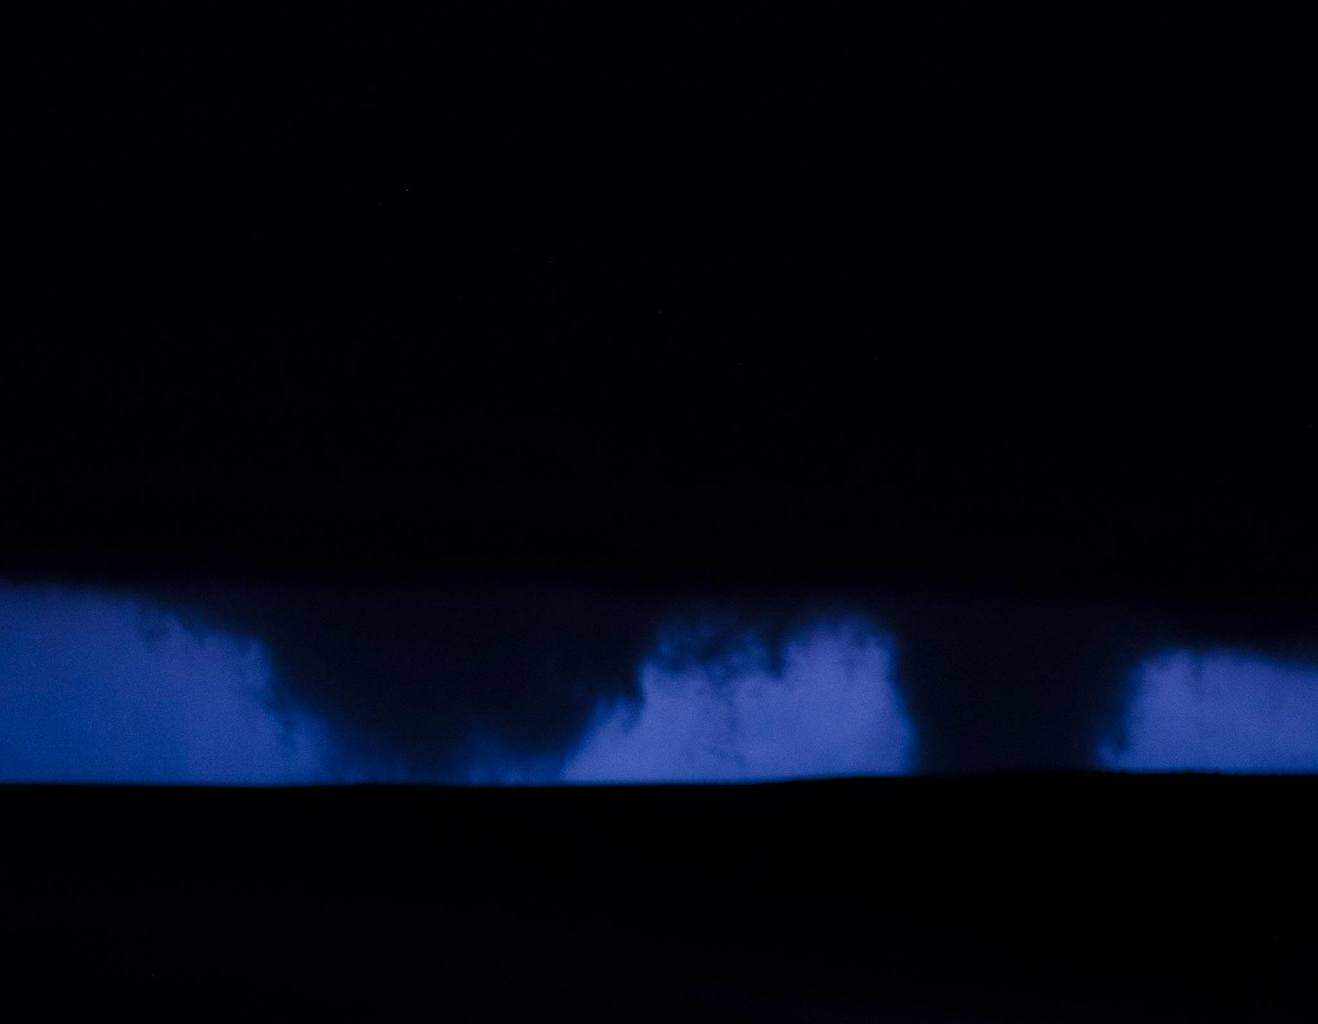 Scary night across the Texas pan handle last night, took this looking north from Miami Texas